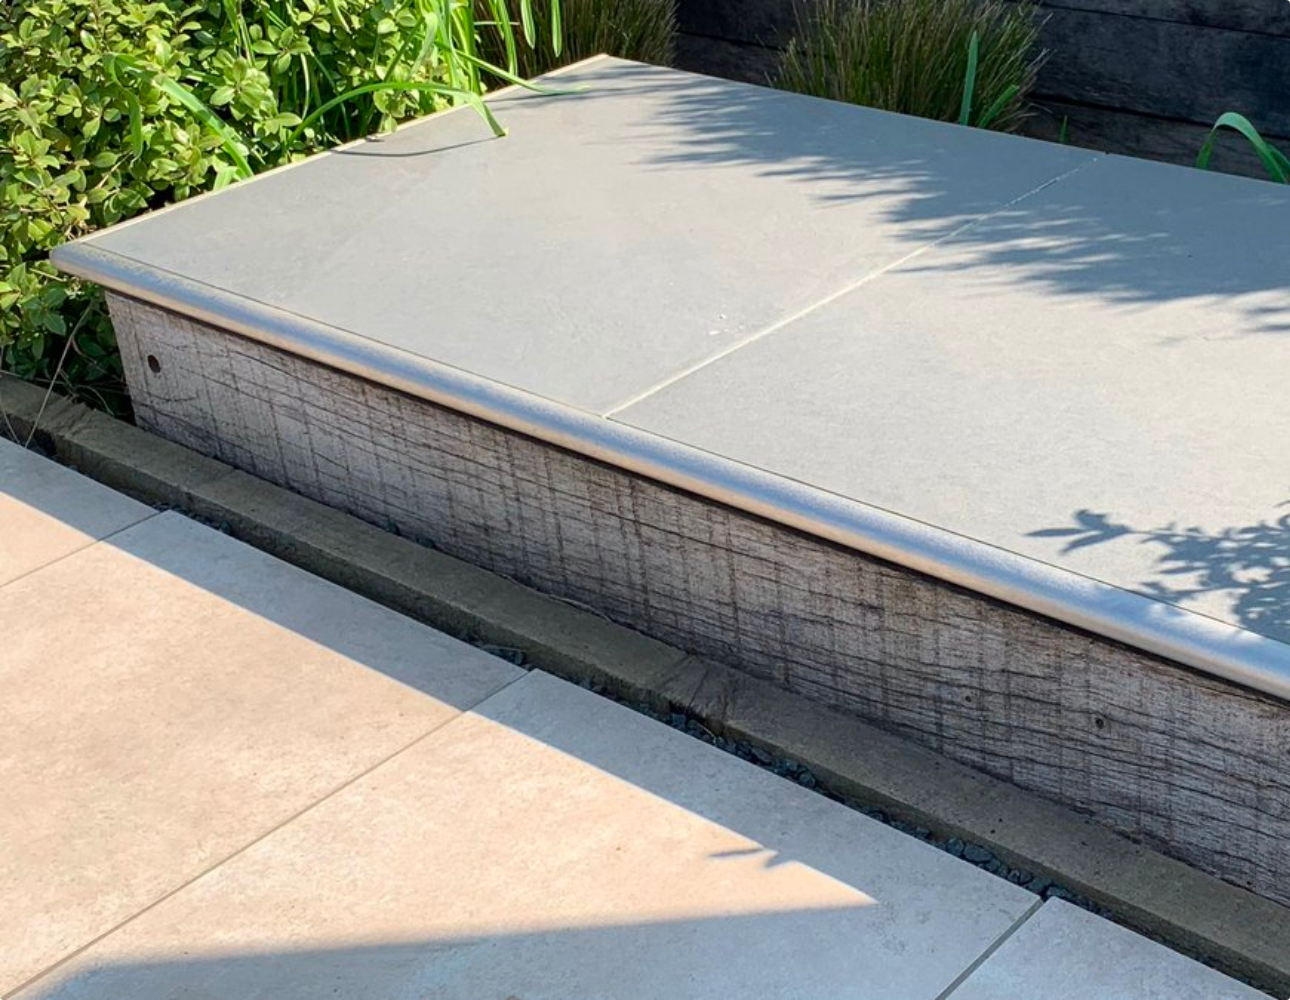 Porcelquick tile trims used on an outdoor seating area